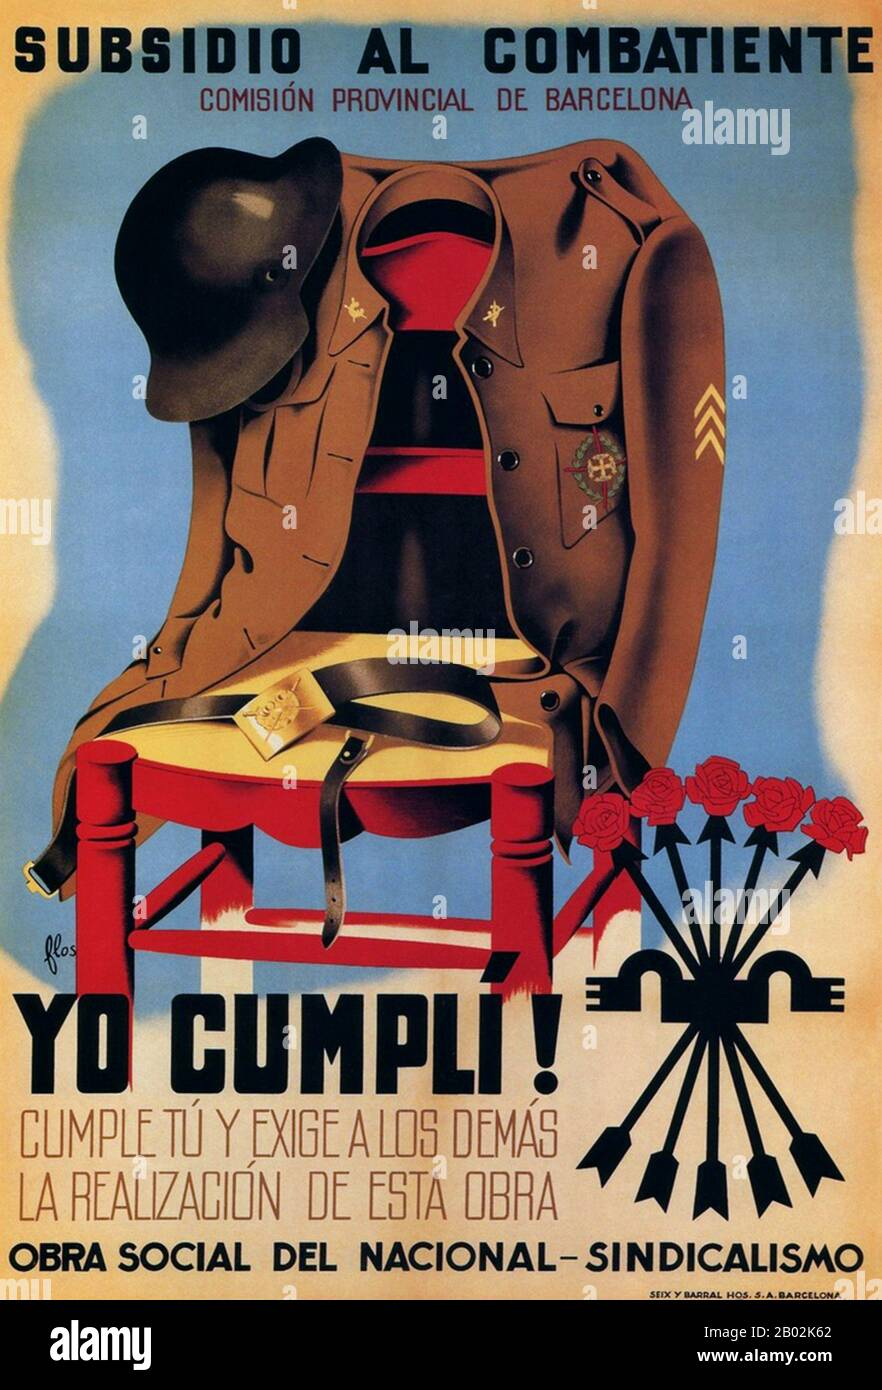 El Generalisimo Spanish Civil War Vintage WW2 Poster